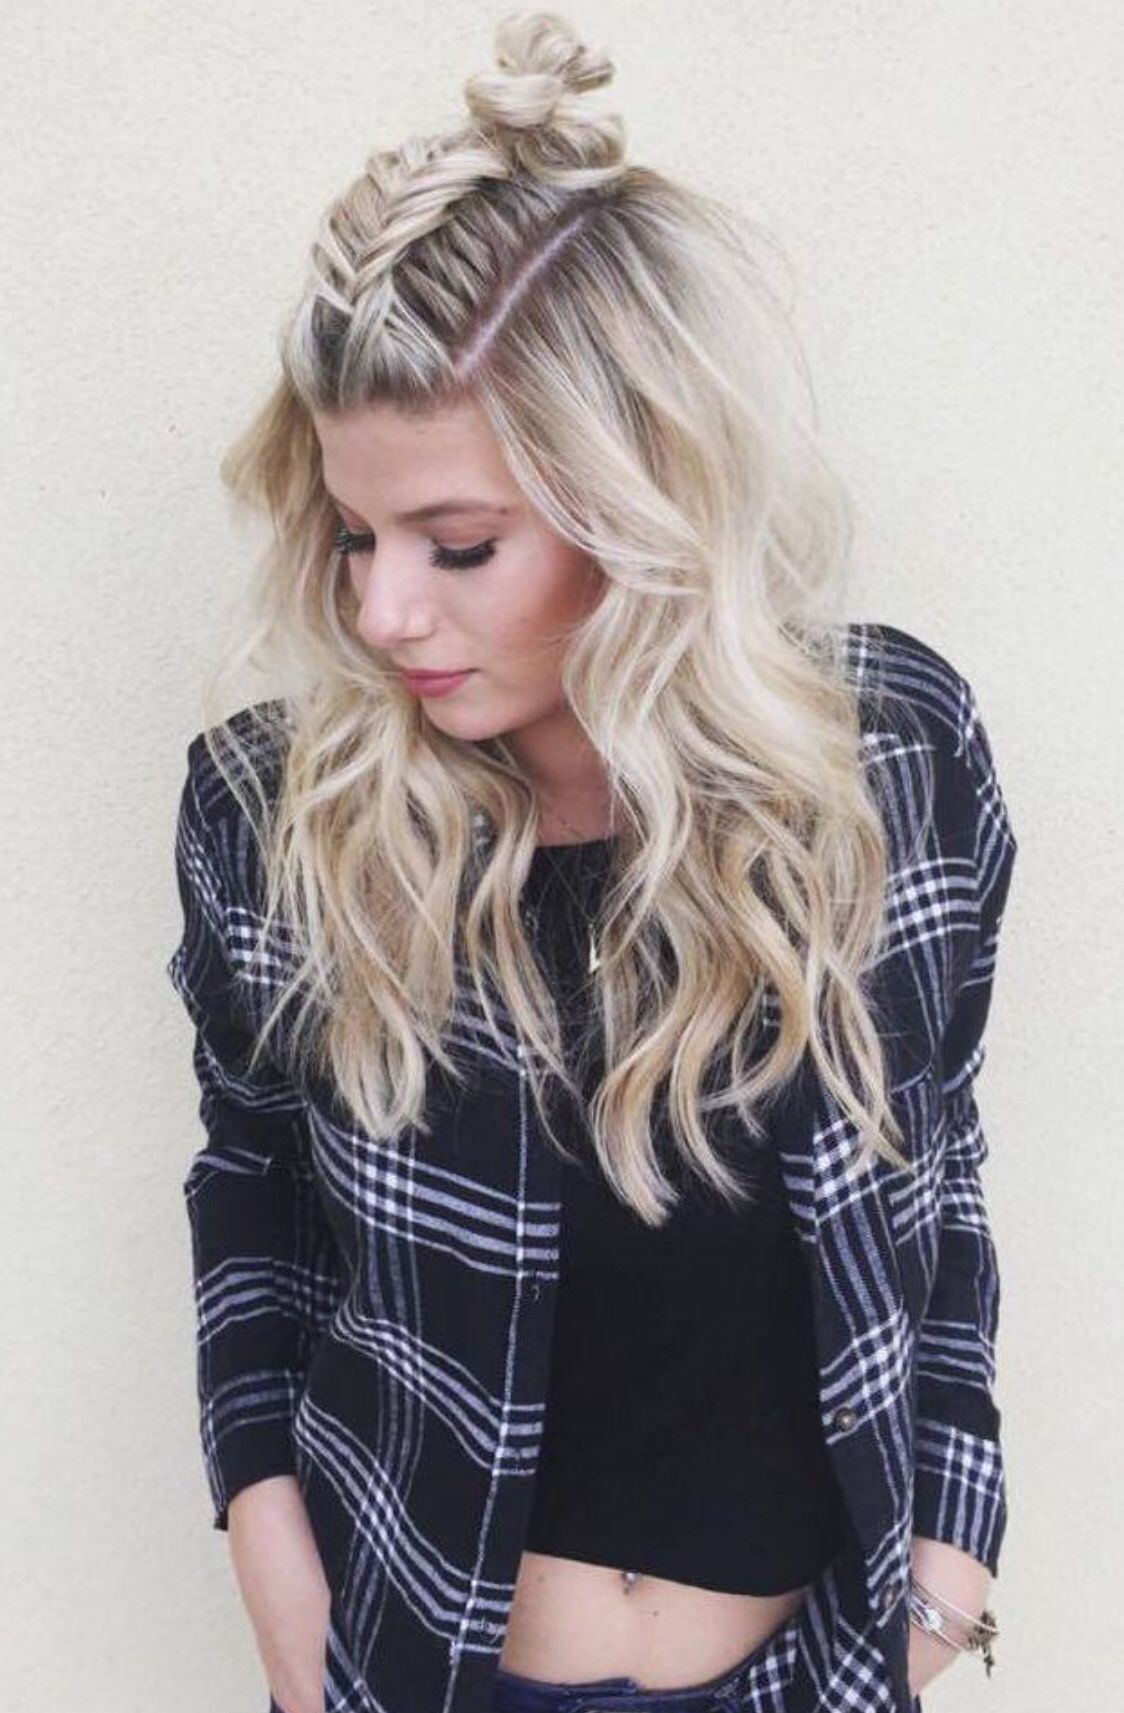 pin by miriam on hairstyles | pinterest | hair style, makeup and